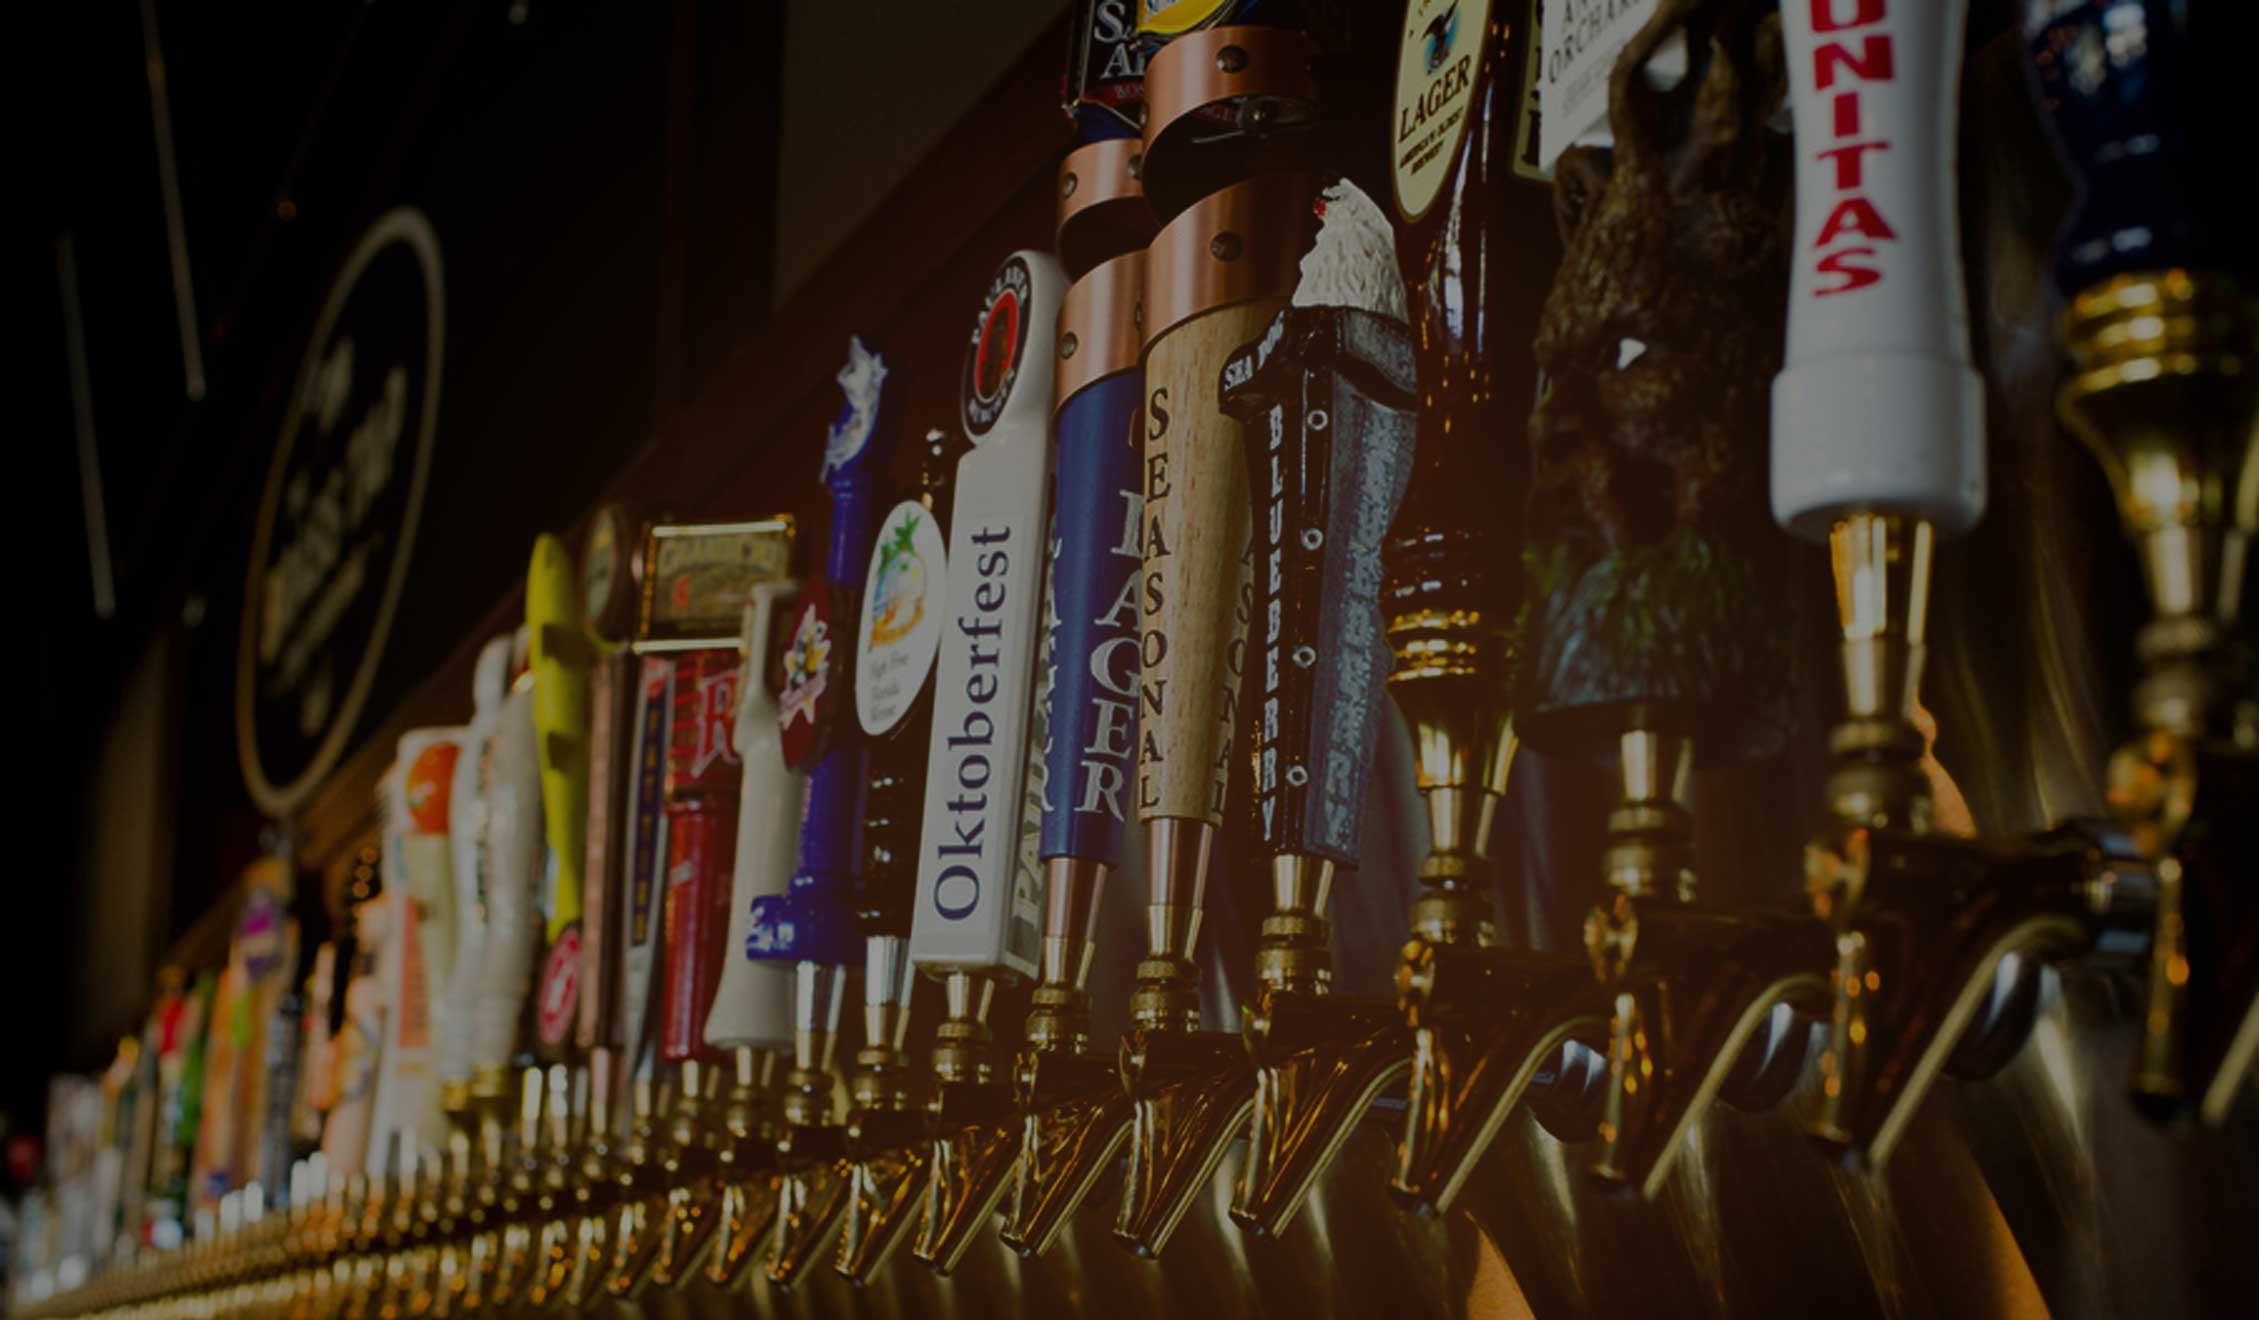 We offer a huge selection of craft beers